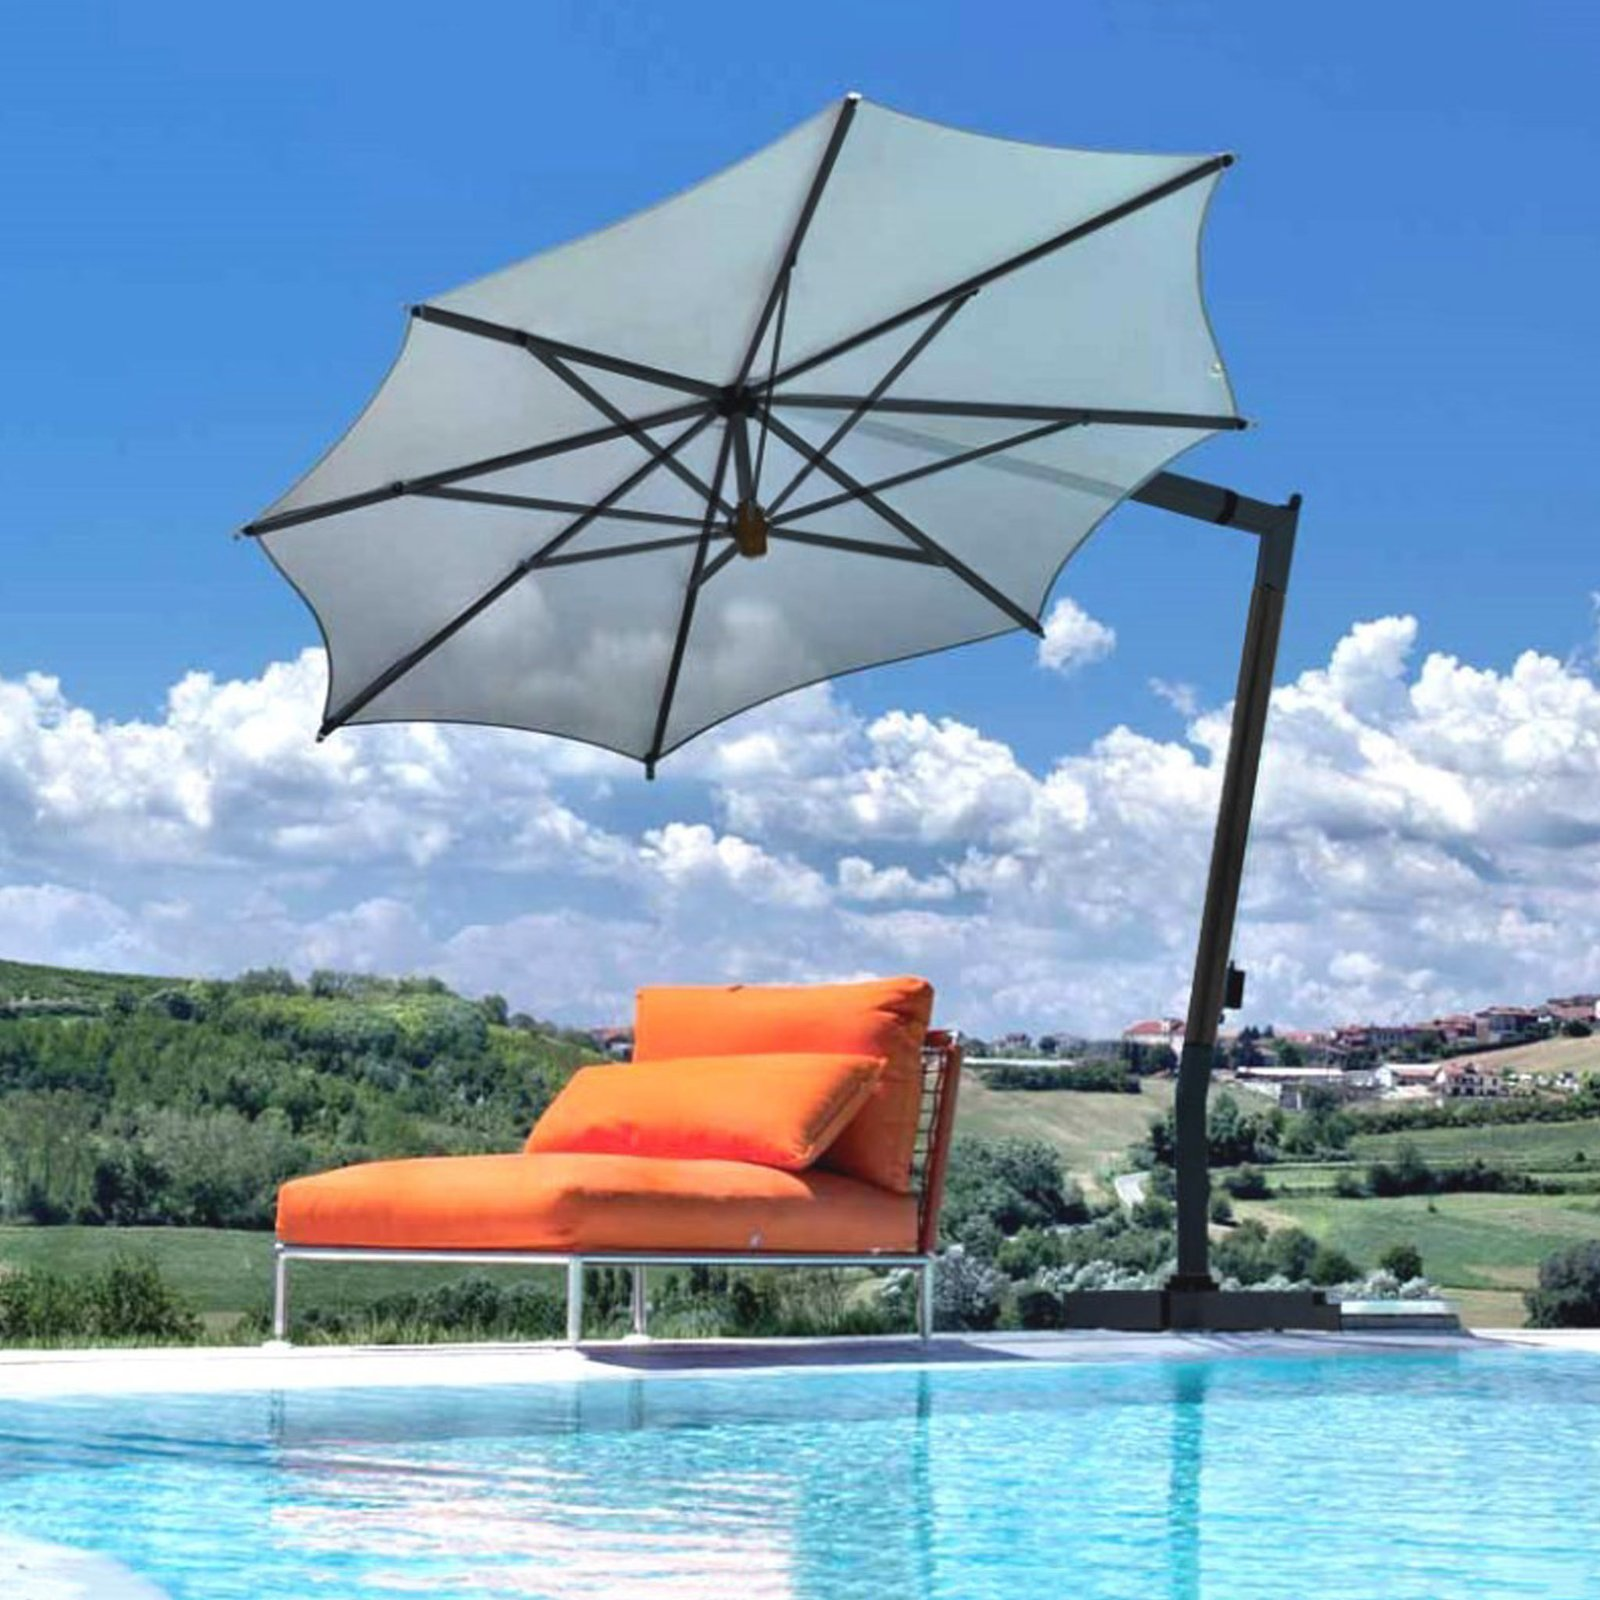 An orange lounge chair next to a pool, is shaded by a large beige Fim patio umbrella in the Italian countryside.